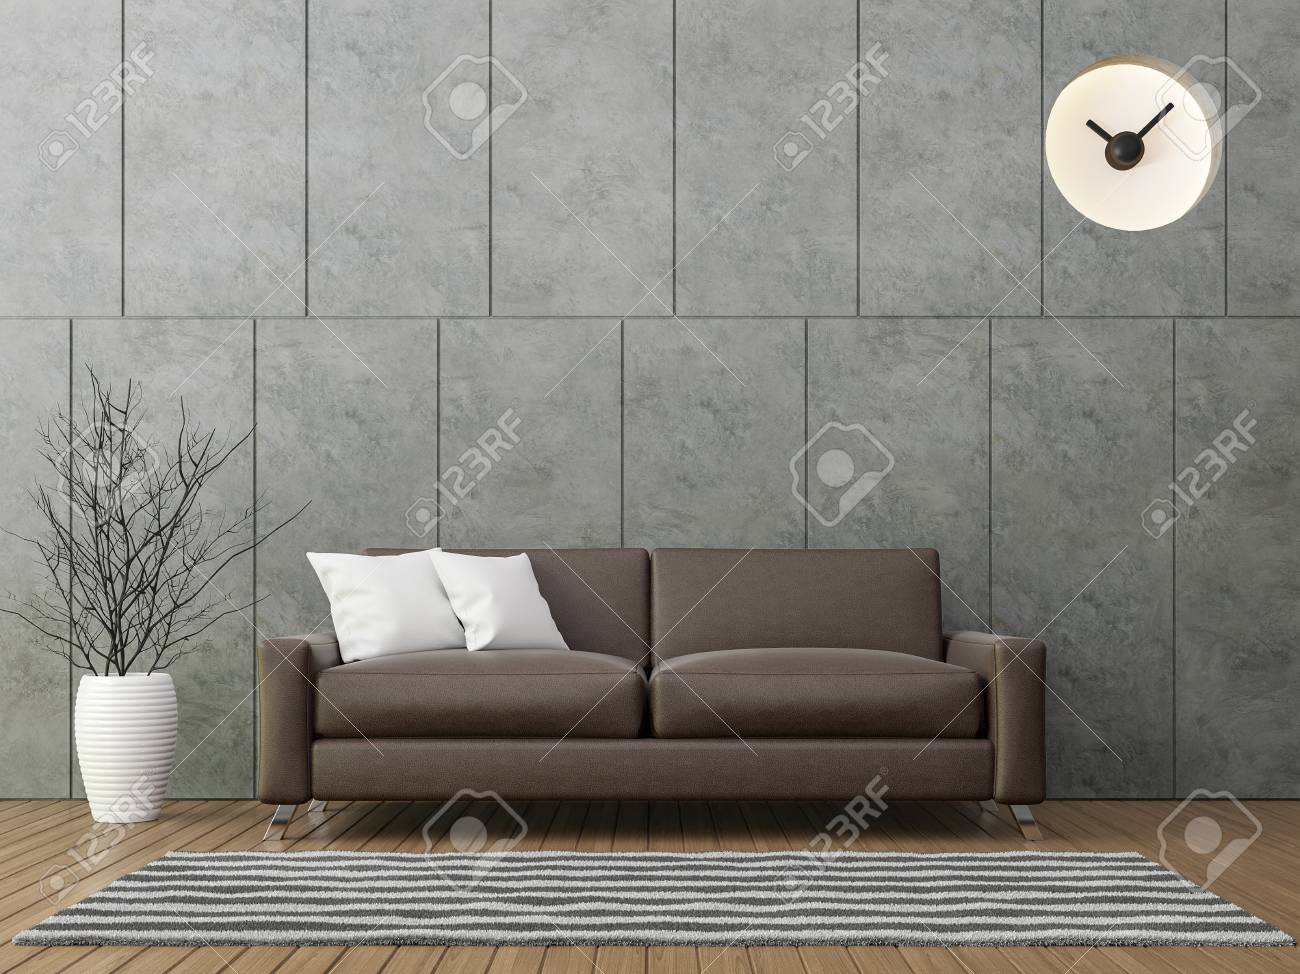 Modern Loft Living With Brown Leather Sofa 3d Rendering Image There Is A Polished  Concrete Wall